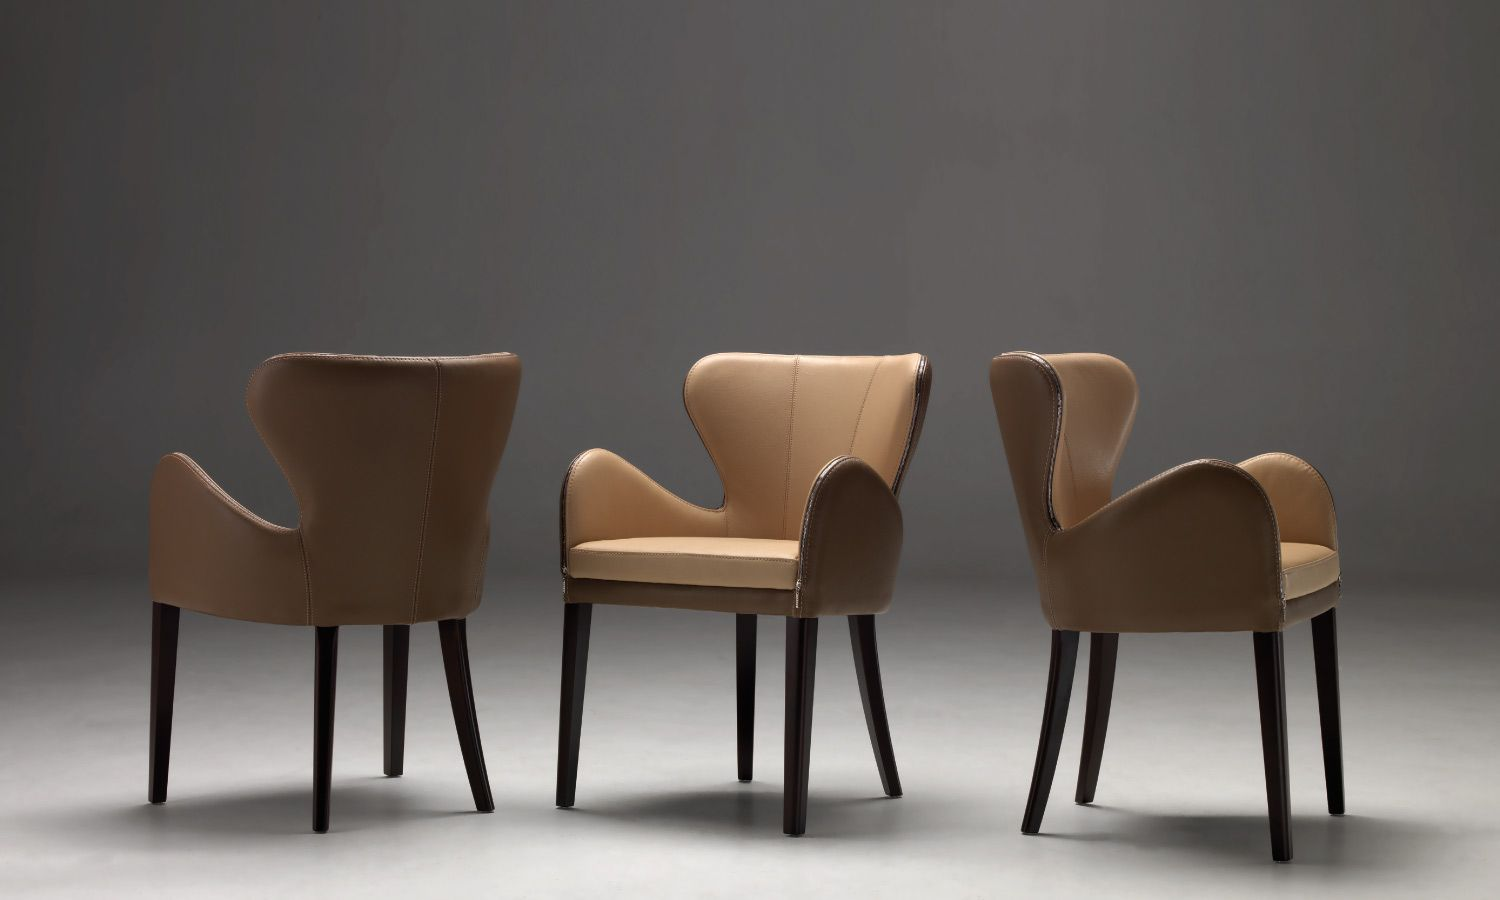 ELEKTRA Chair By BORZALINO   Leather With Wood Base   #furniture #sofa  #chair #armchair #carlobimbi